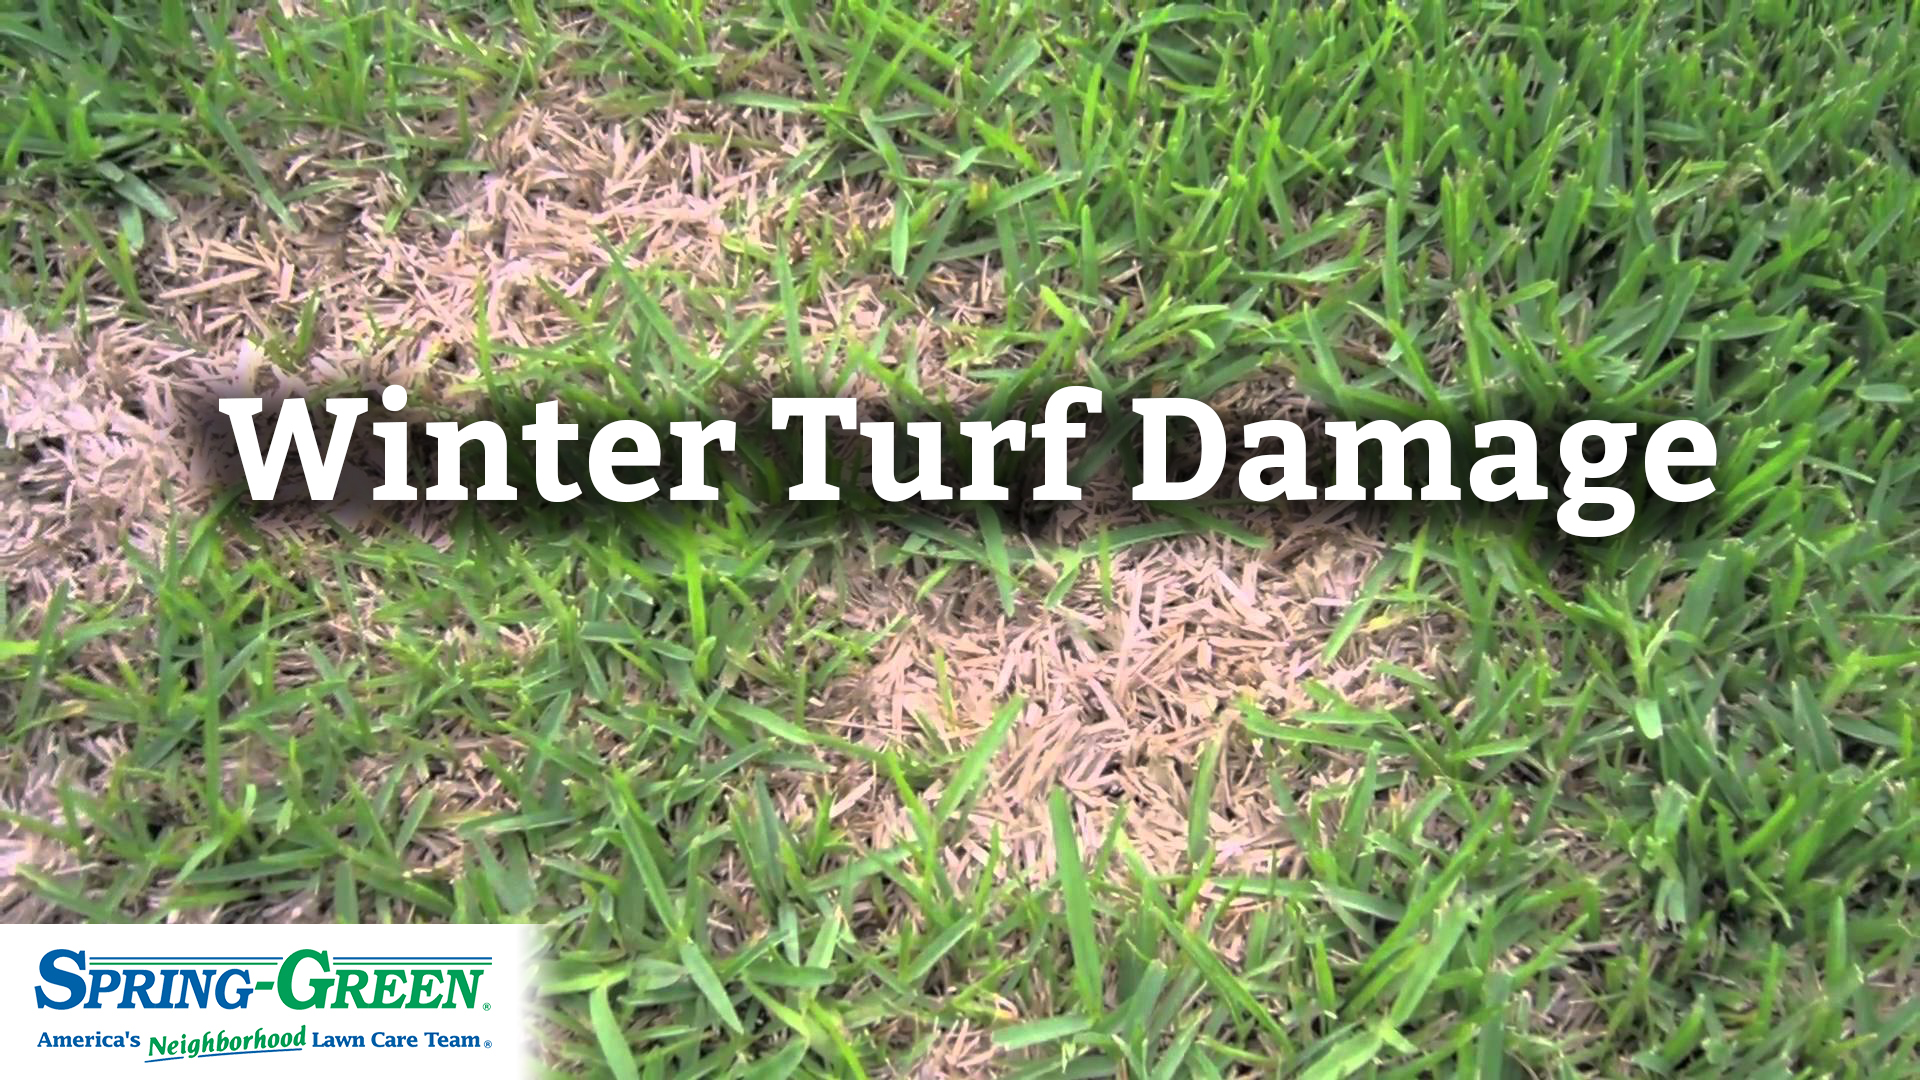 Favorite Good How To Kill Grass Gus Winter Grass Damage Winter Turf How C Temperatures Affected Lawns How To Kill Grass houzz 01 How To Kill Grass